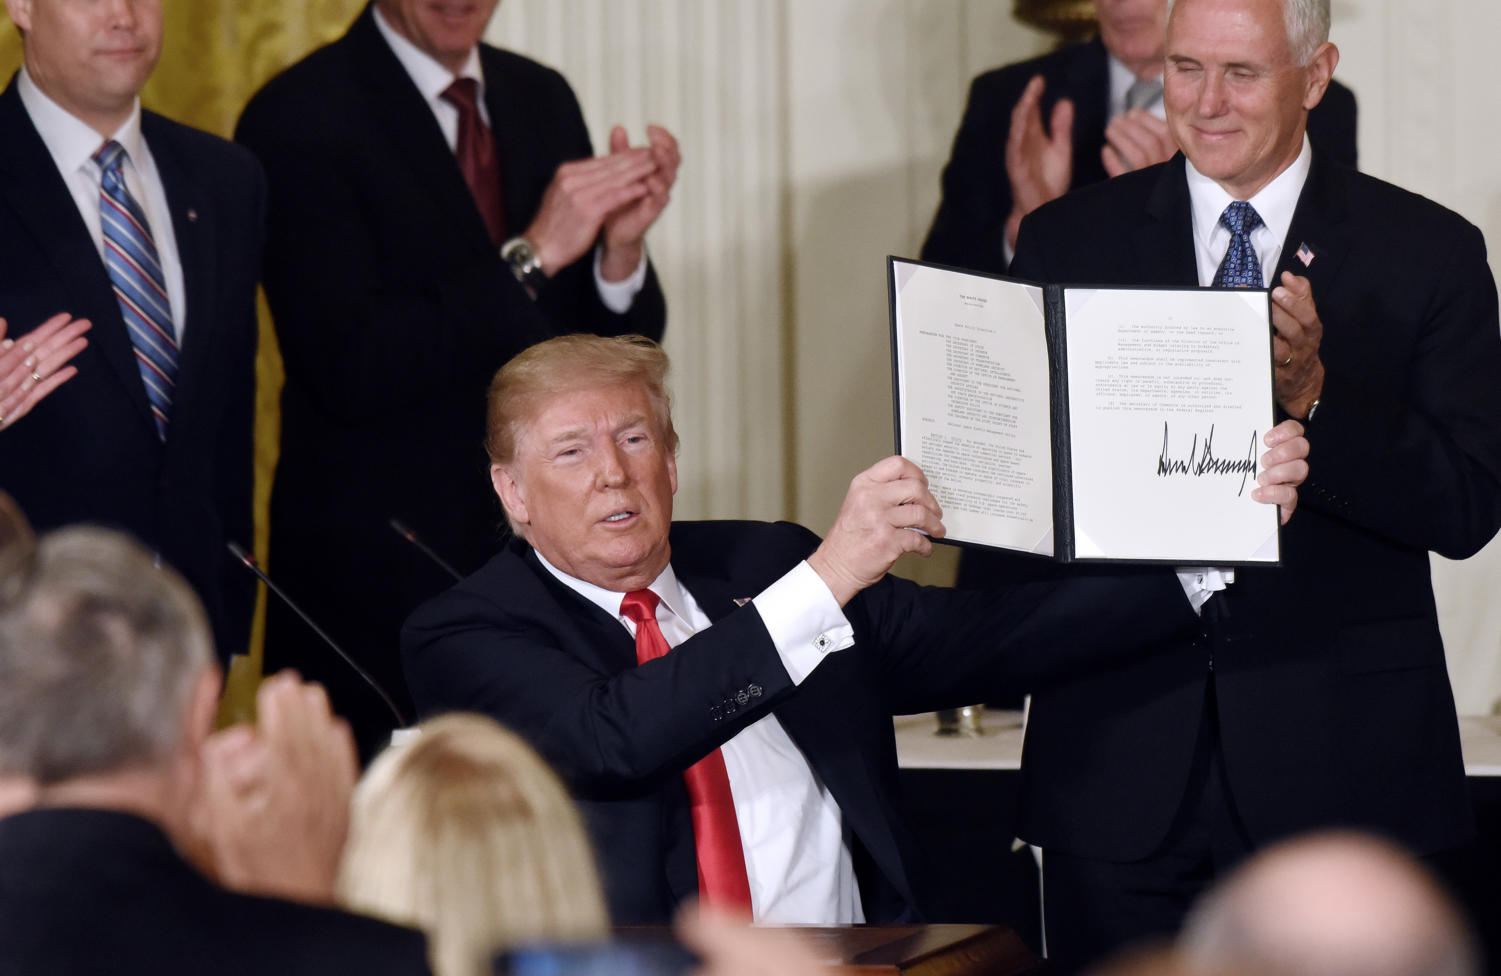 President Donald Trump holds a signed National Space Directive to establish a Space Traffic Management program to address the congestion of satellites and space vehicles in Earth's orbit during a meeting with the National Space Council on Monday, June 18, 2018 in the East Room of the White House, in Washington, D.C. (Olivier Douliery/Abaca Press/TNS)